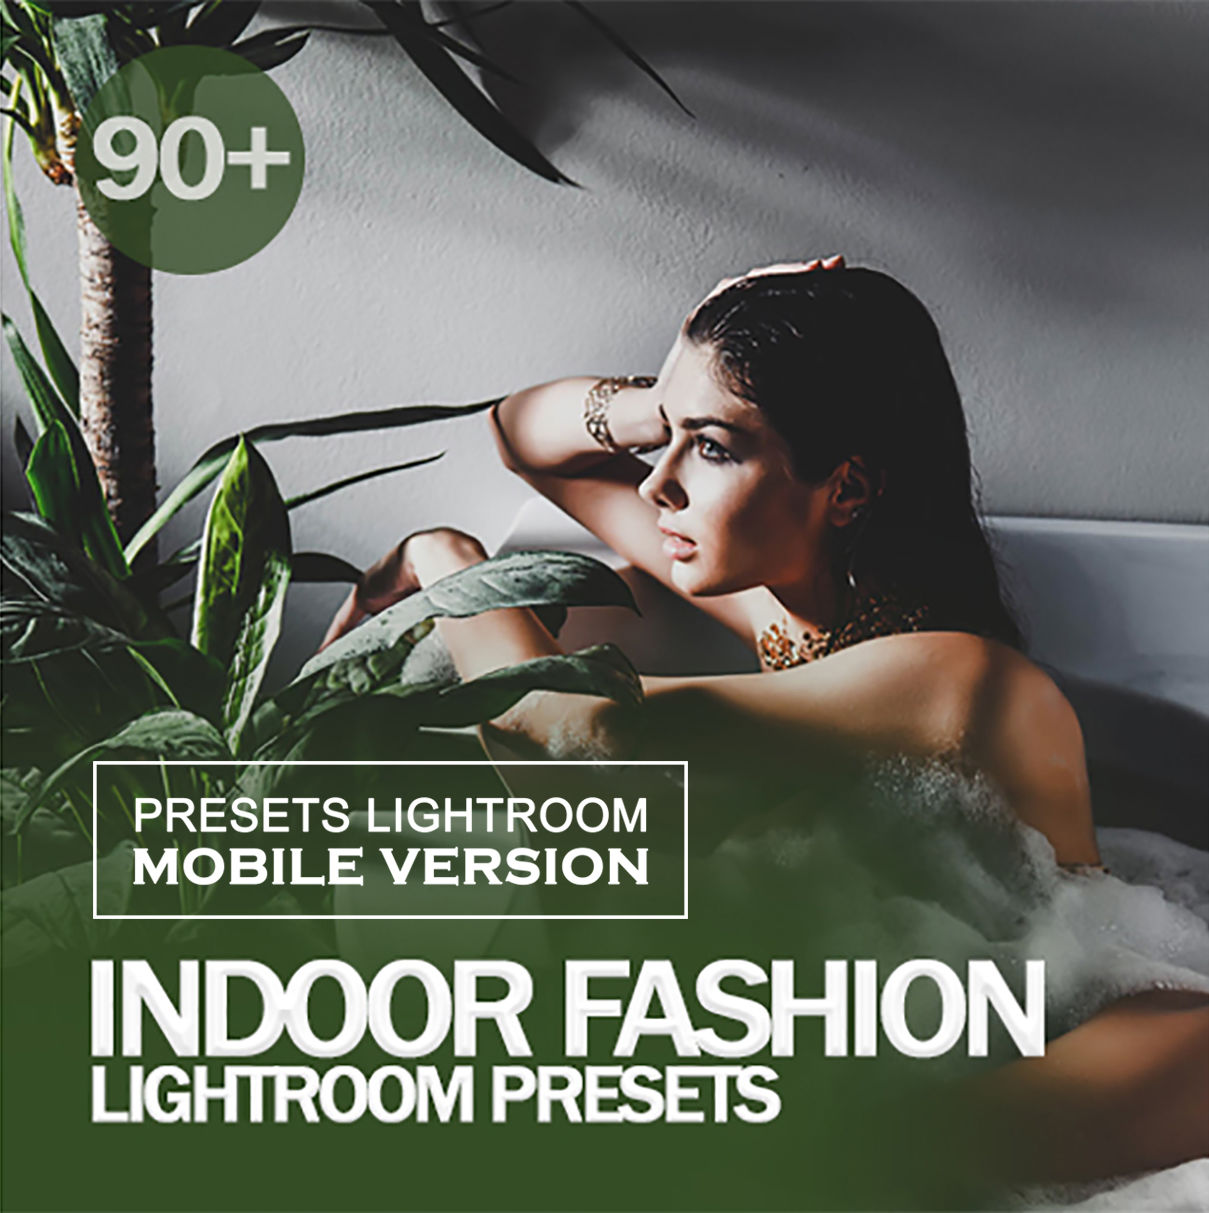 Indoor Fashion Lightroom CC Mobile Presets (Adroid and